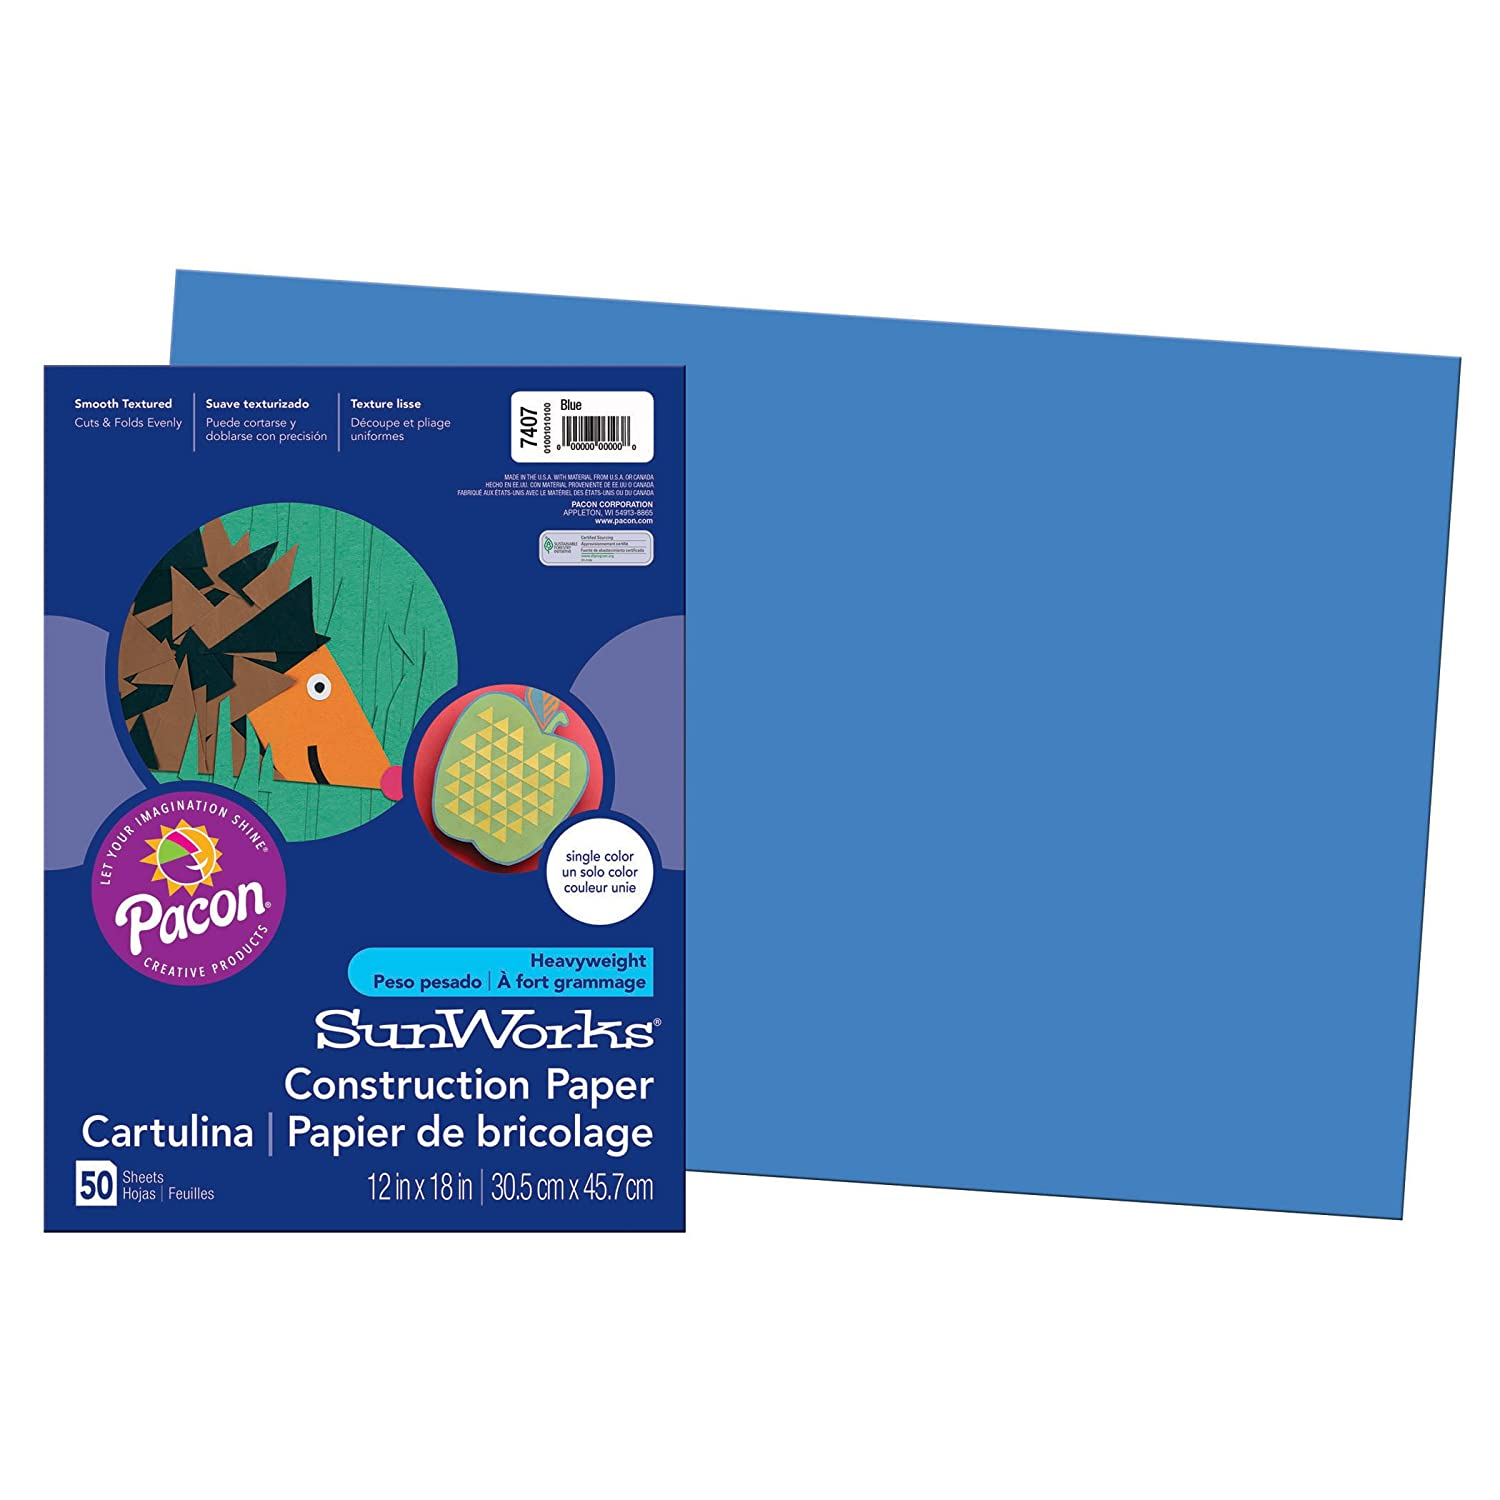 Pacon PAC7407 SunWorks Construction Paper, 12